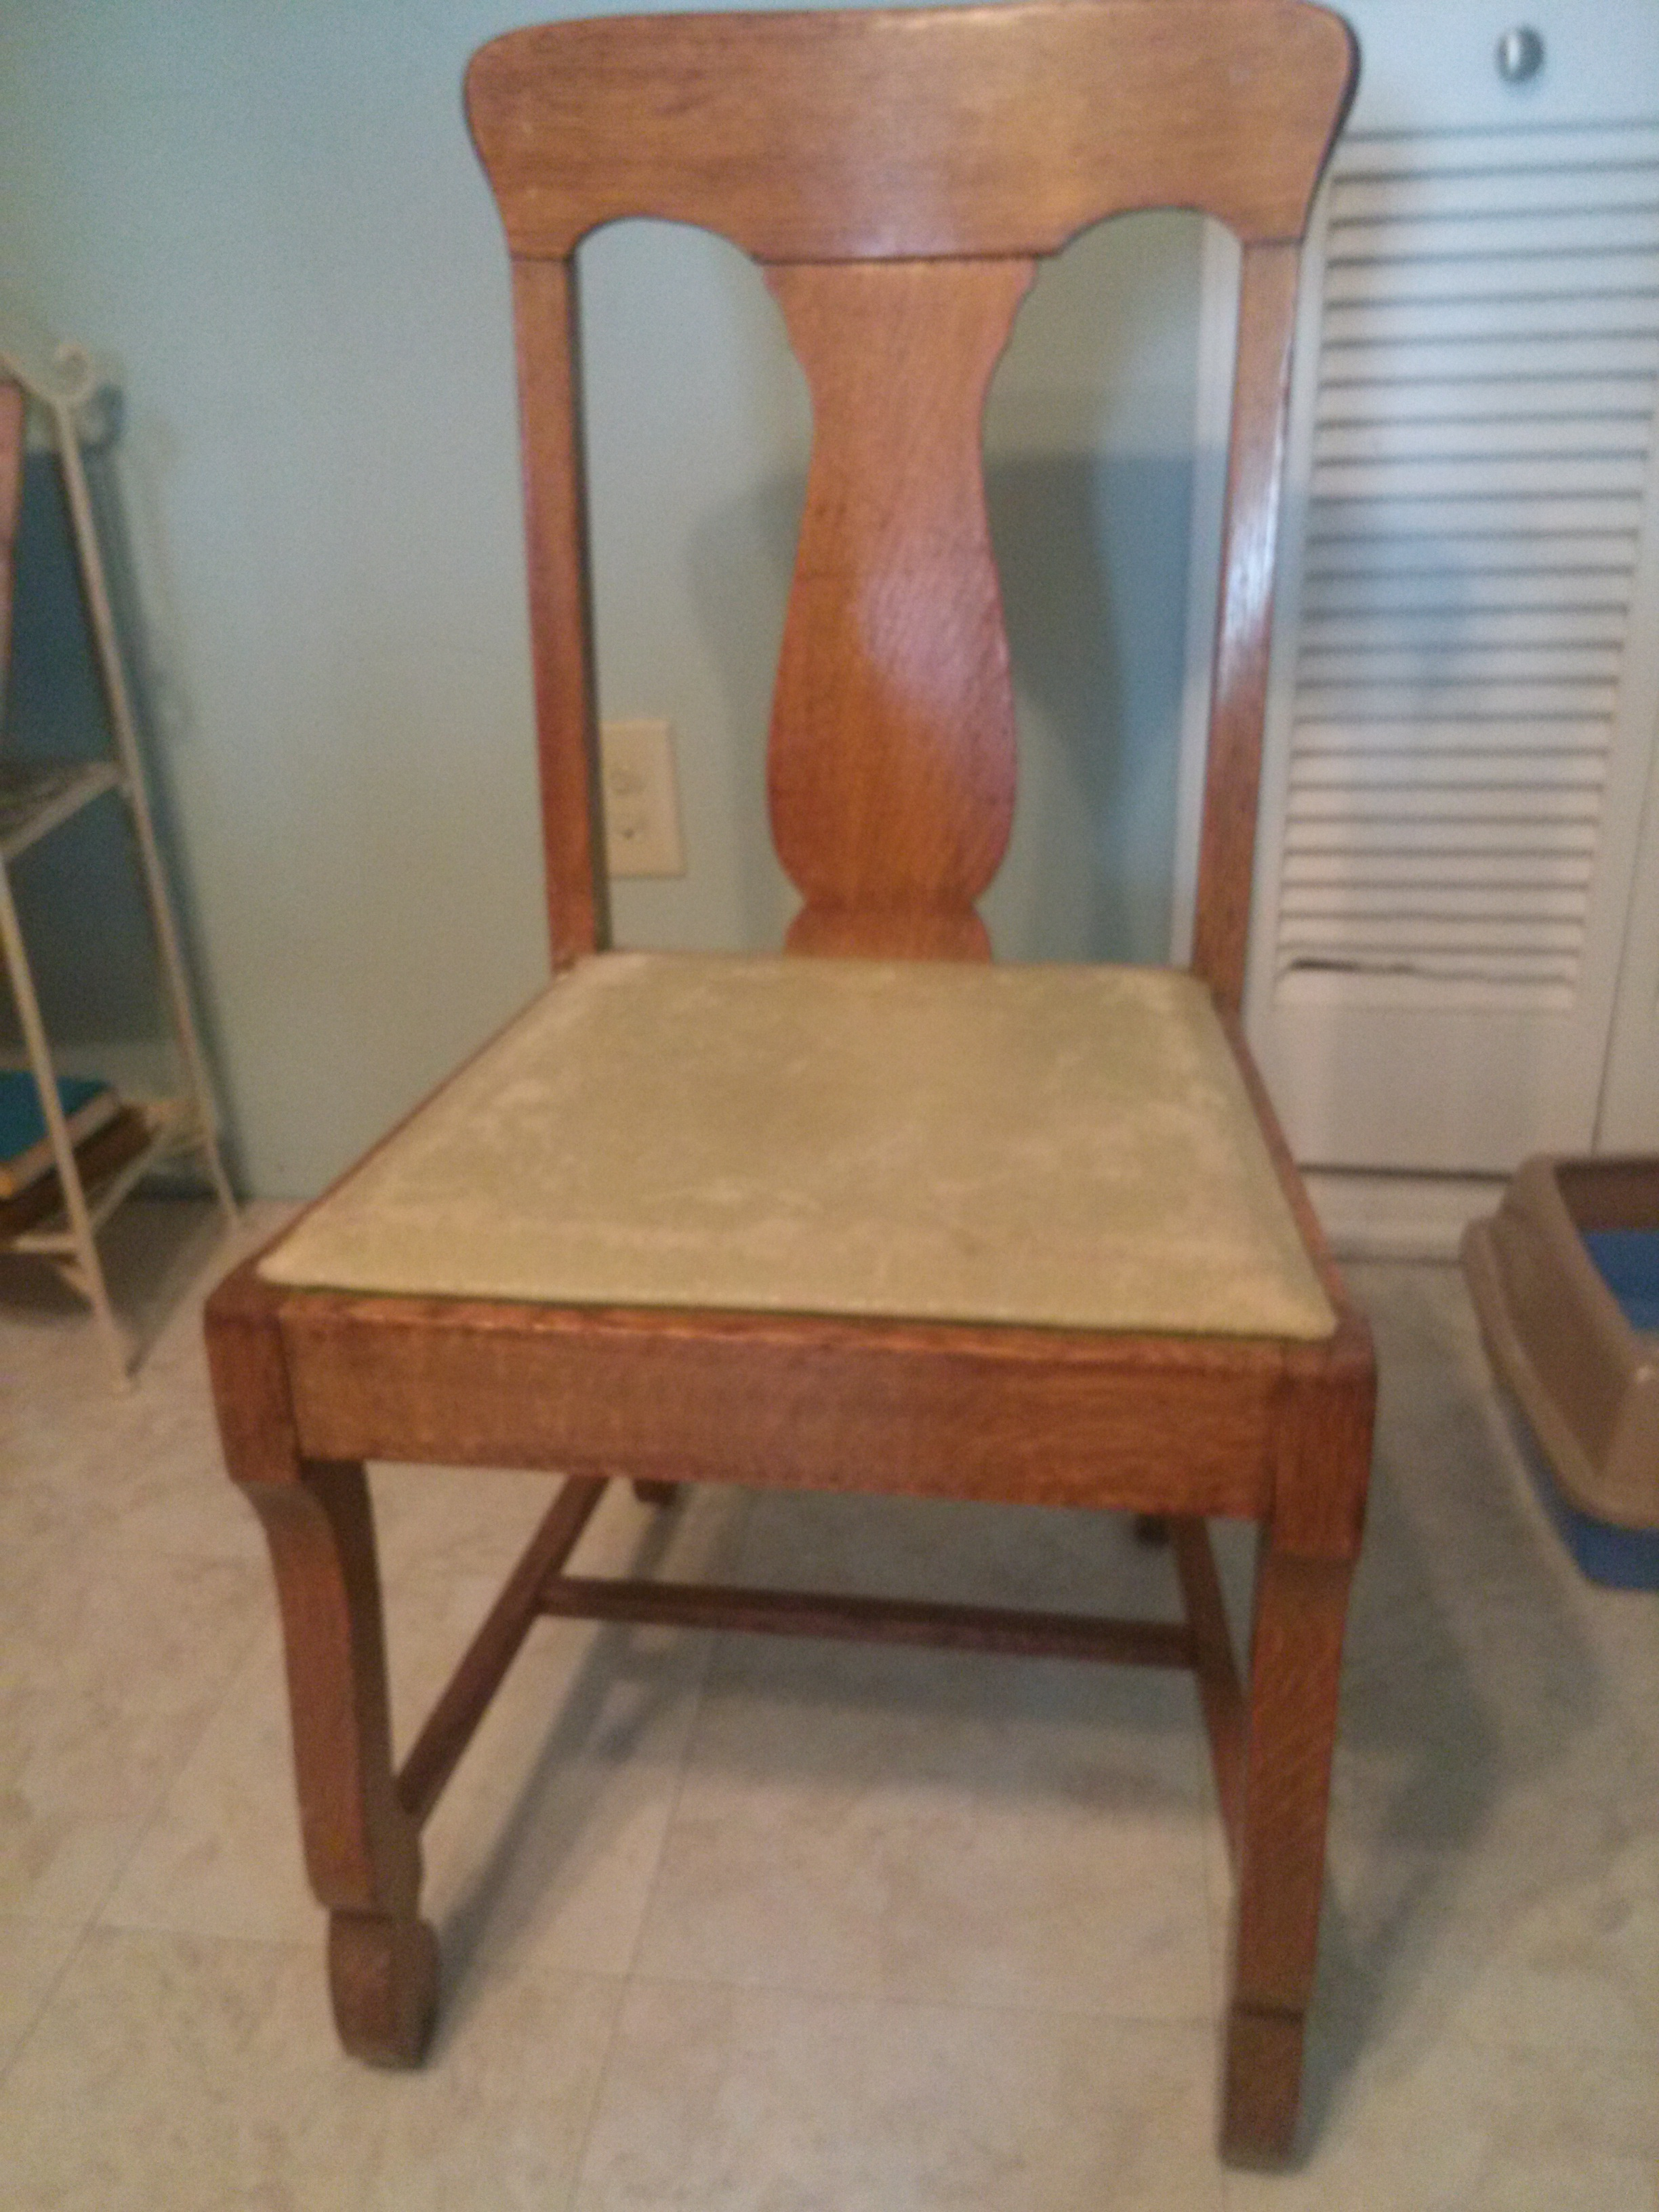 antique oak dining chairs prices for 3 room chair appraisal instappraisal